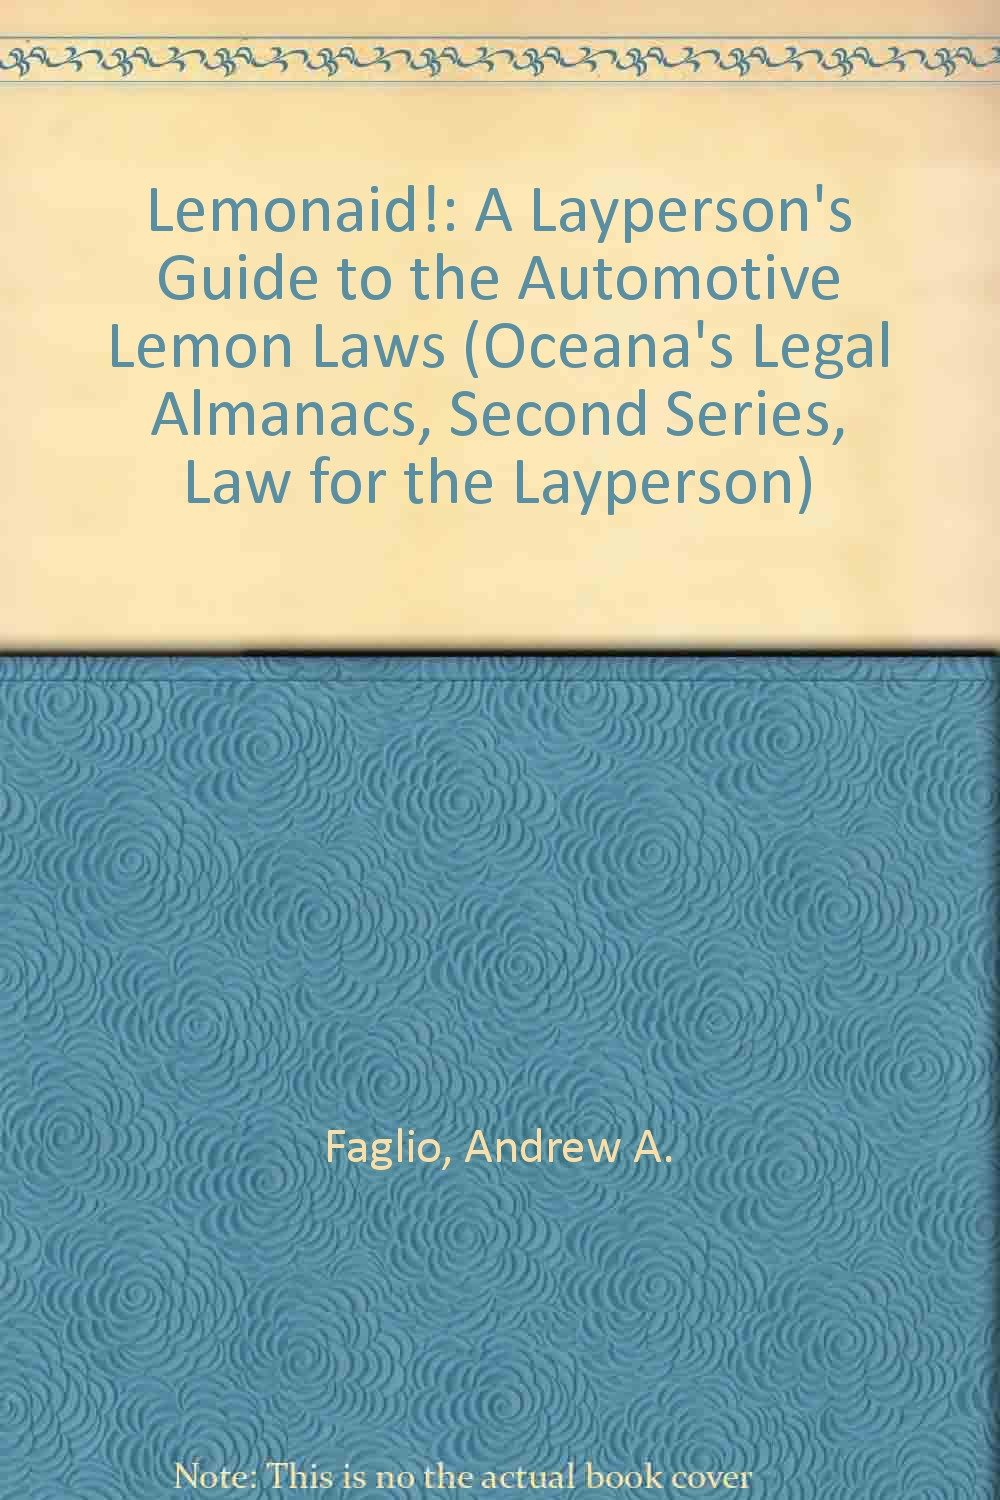 A Layperson's Guide to the Automotive Lemon Laws (Oceana's Legal Almanacs,  Second Series, Law for the Layperson): Andrew A. Faglio: 9780379111828: ...